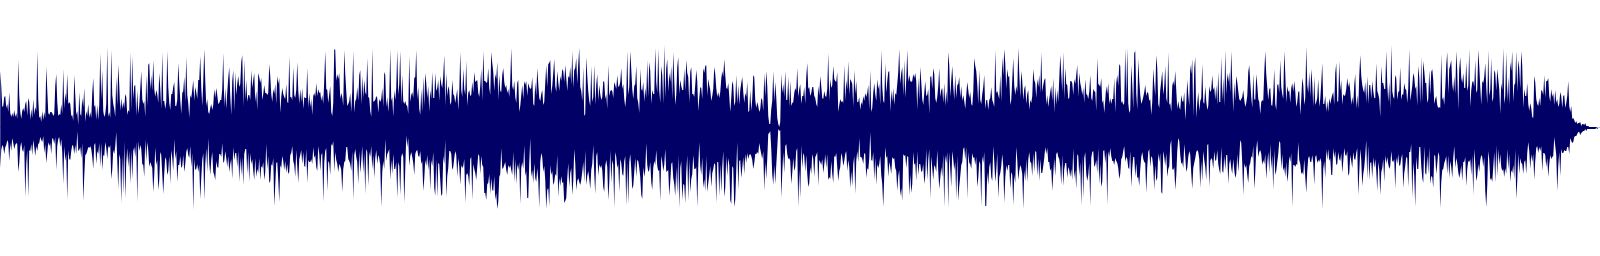 waveform of track #128718